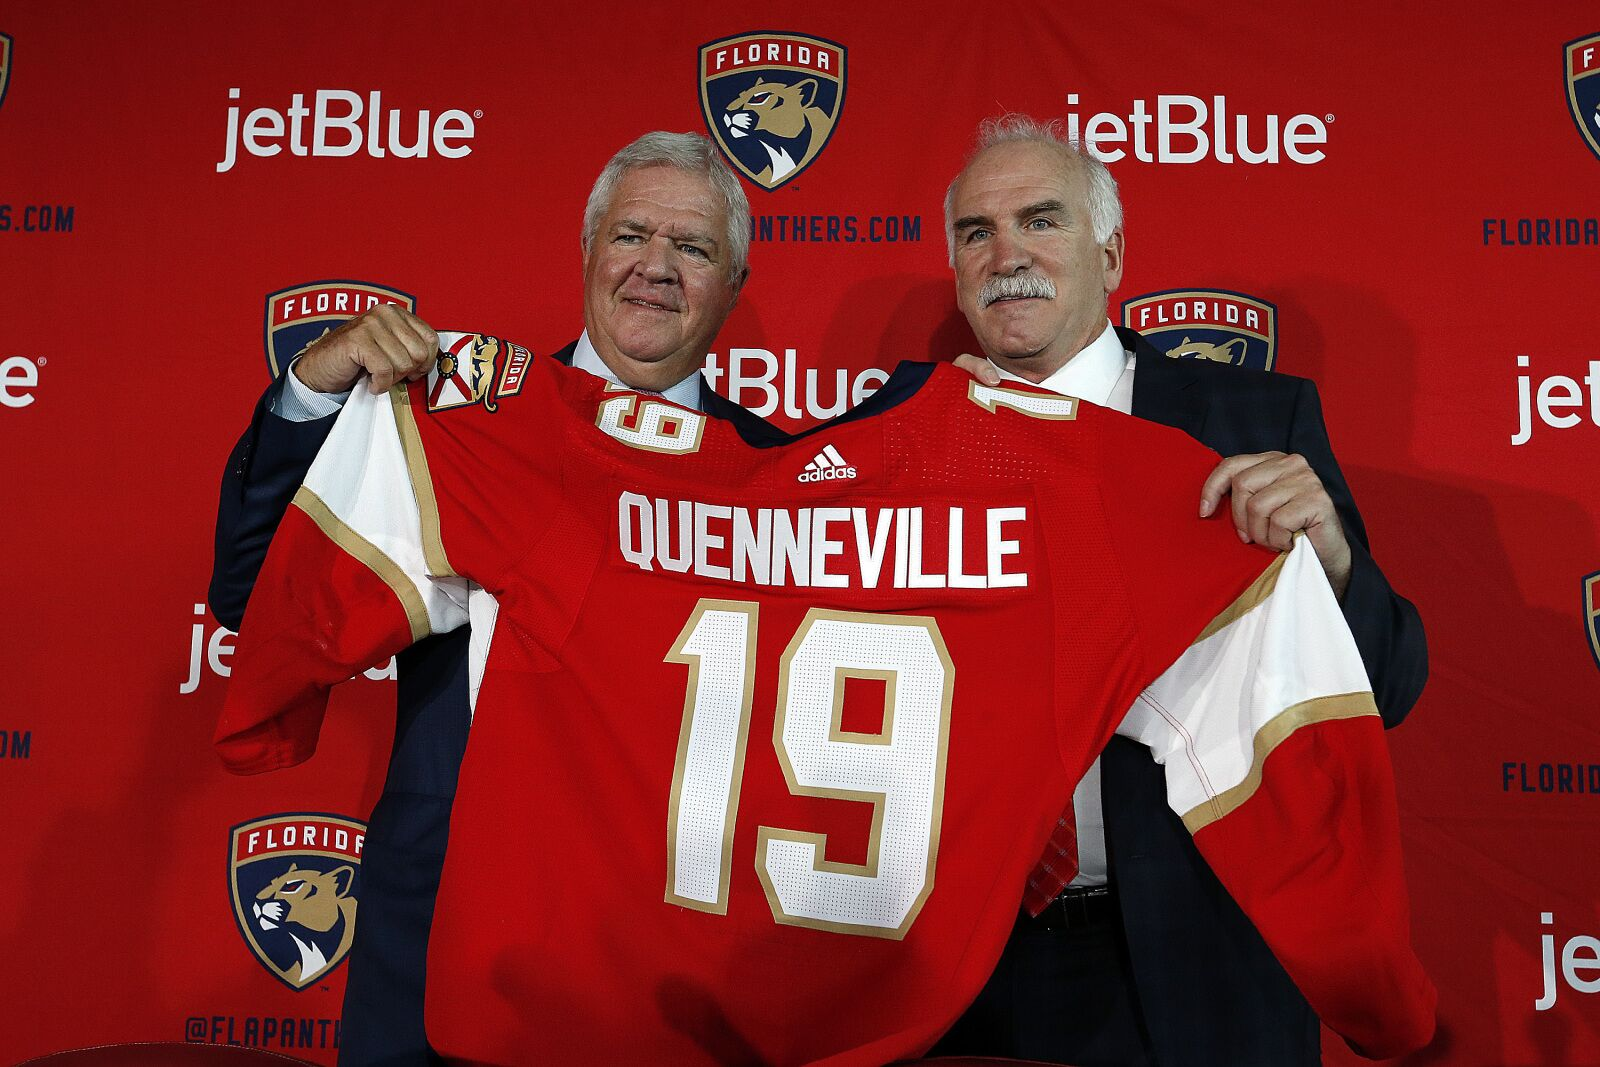 Florida Panthers Joel Quenneville Hiring Begins Offseason Of Changes